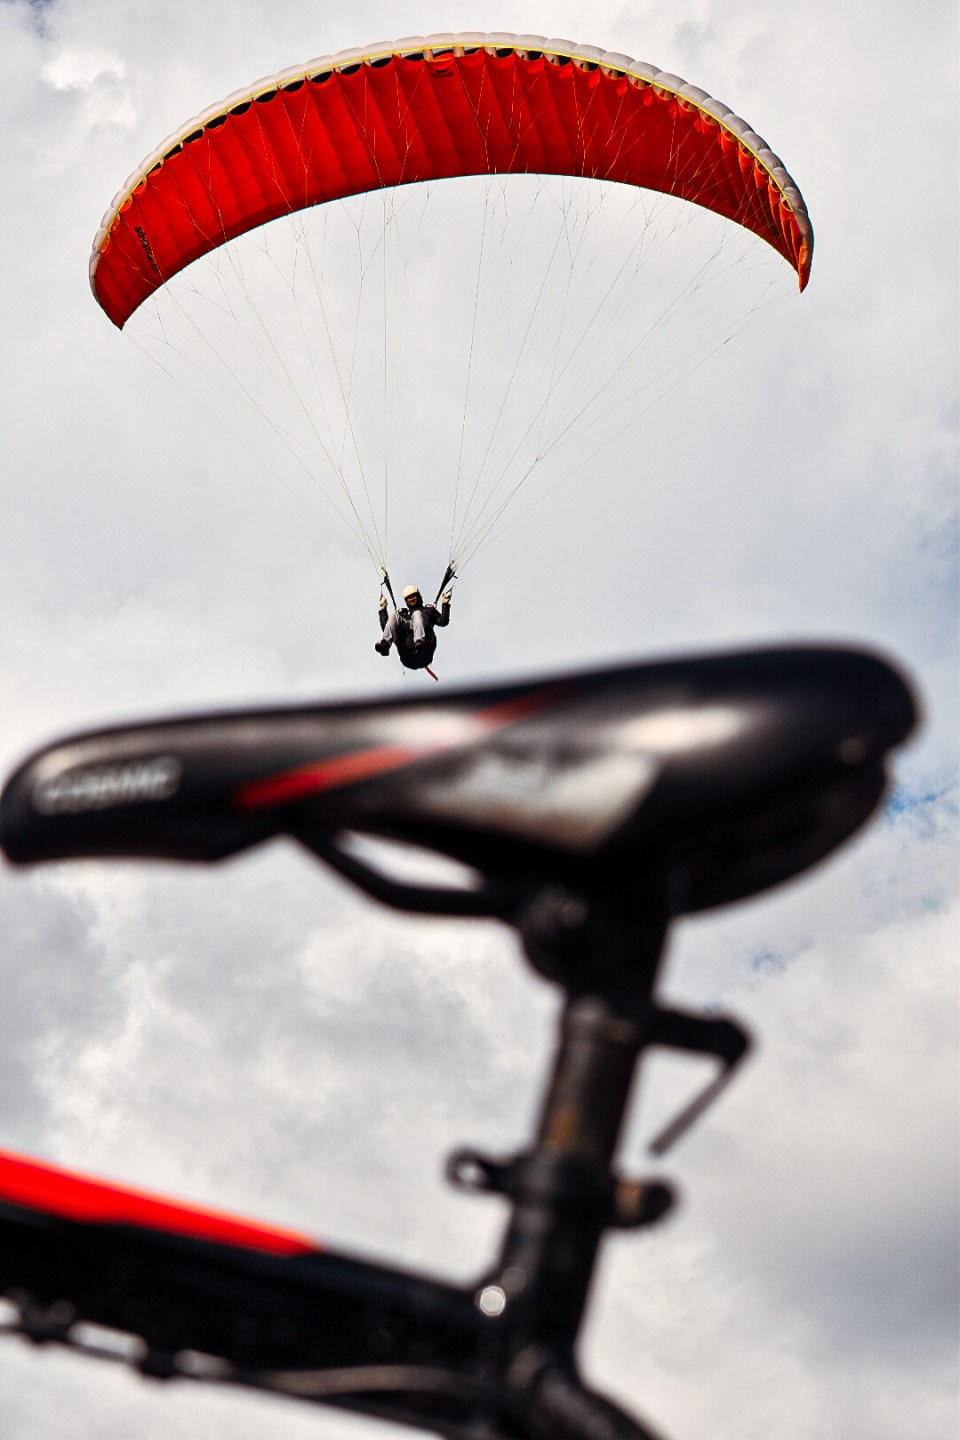 Paraglider landing on the Cycle Seat